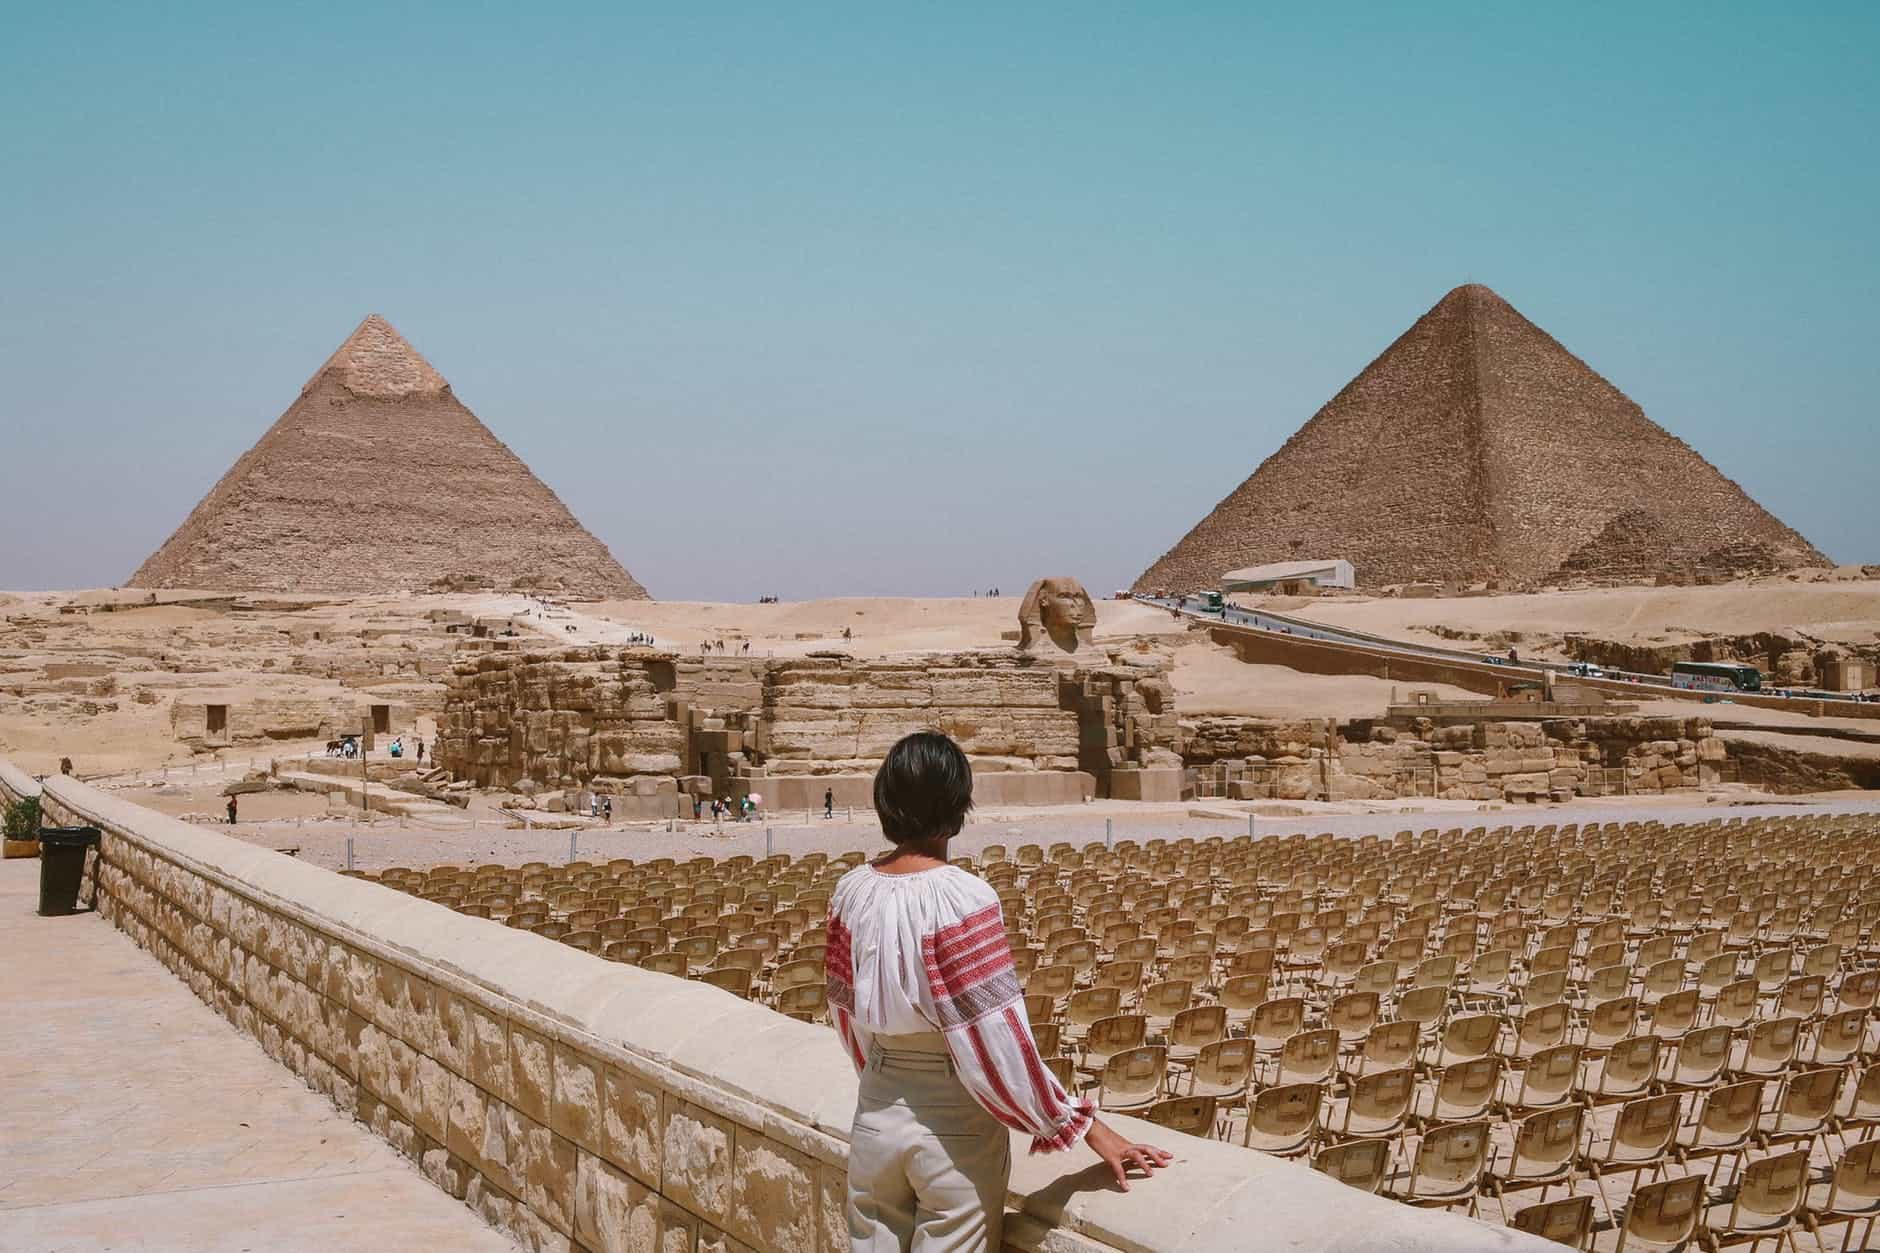 The Pyramid of Giza: Digging The Past Of Ancient Egypt